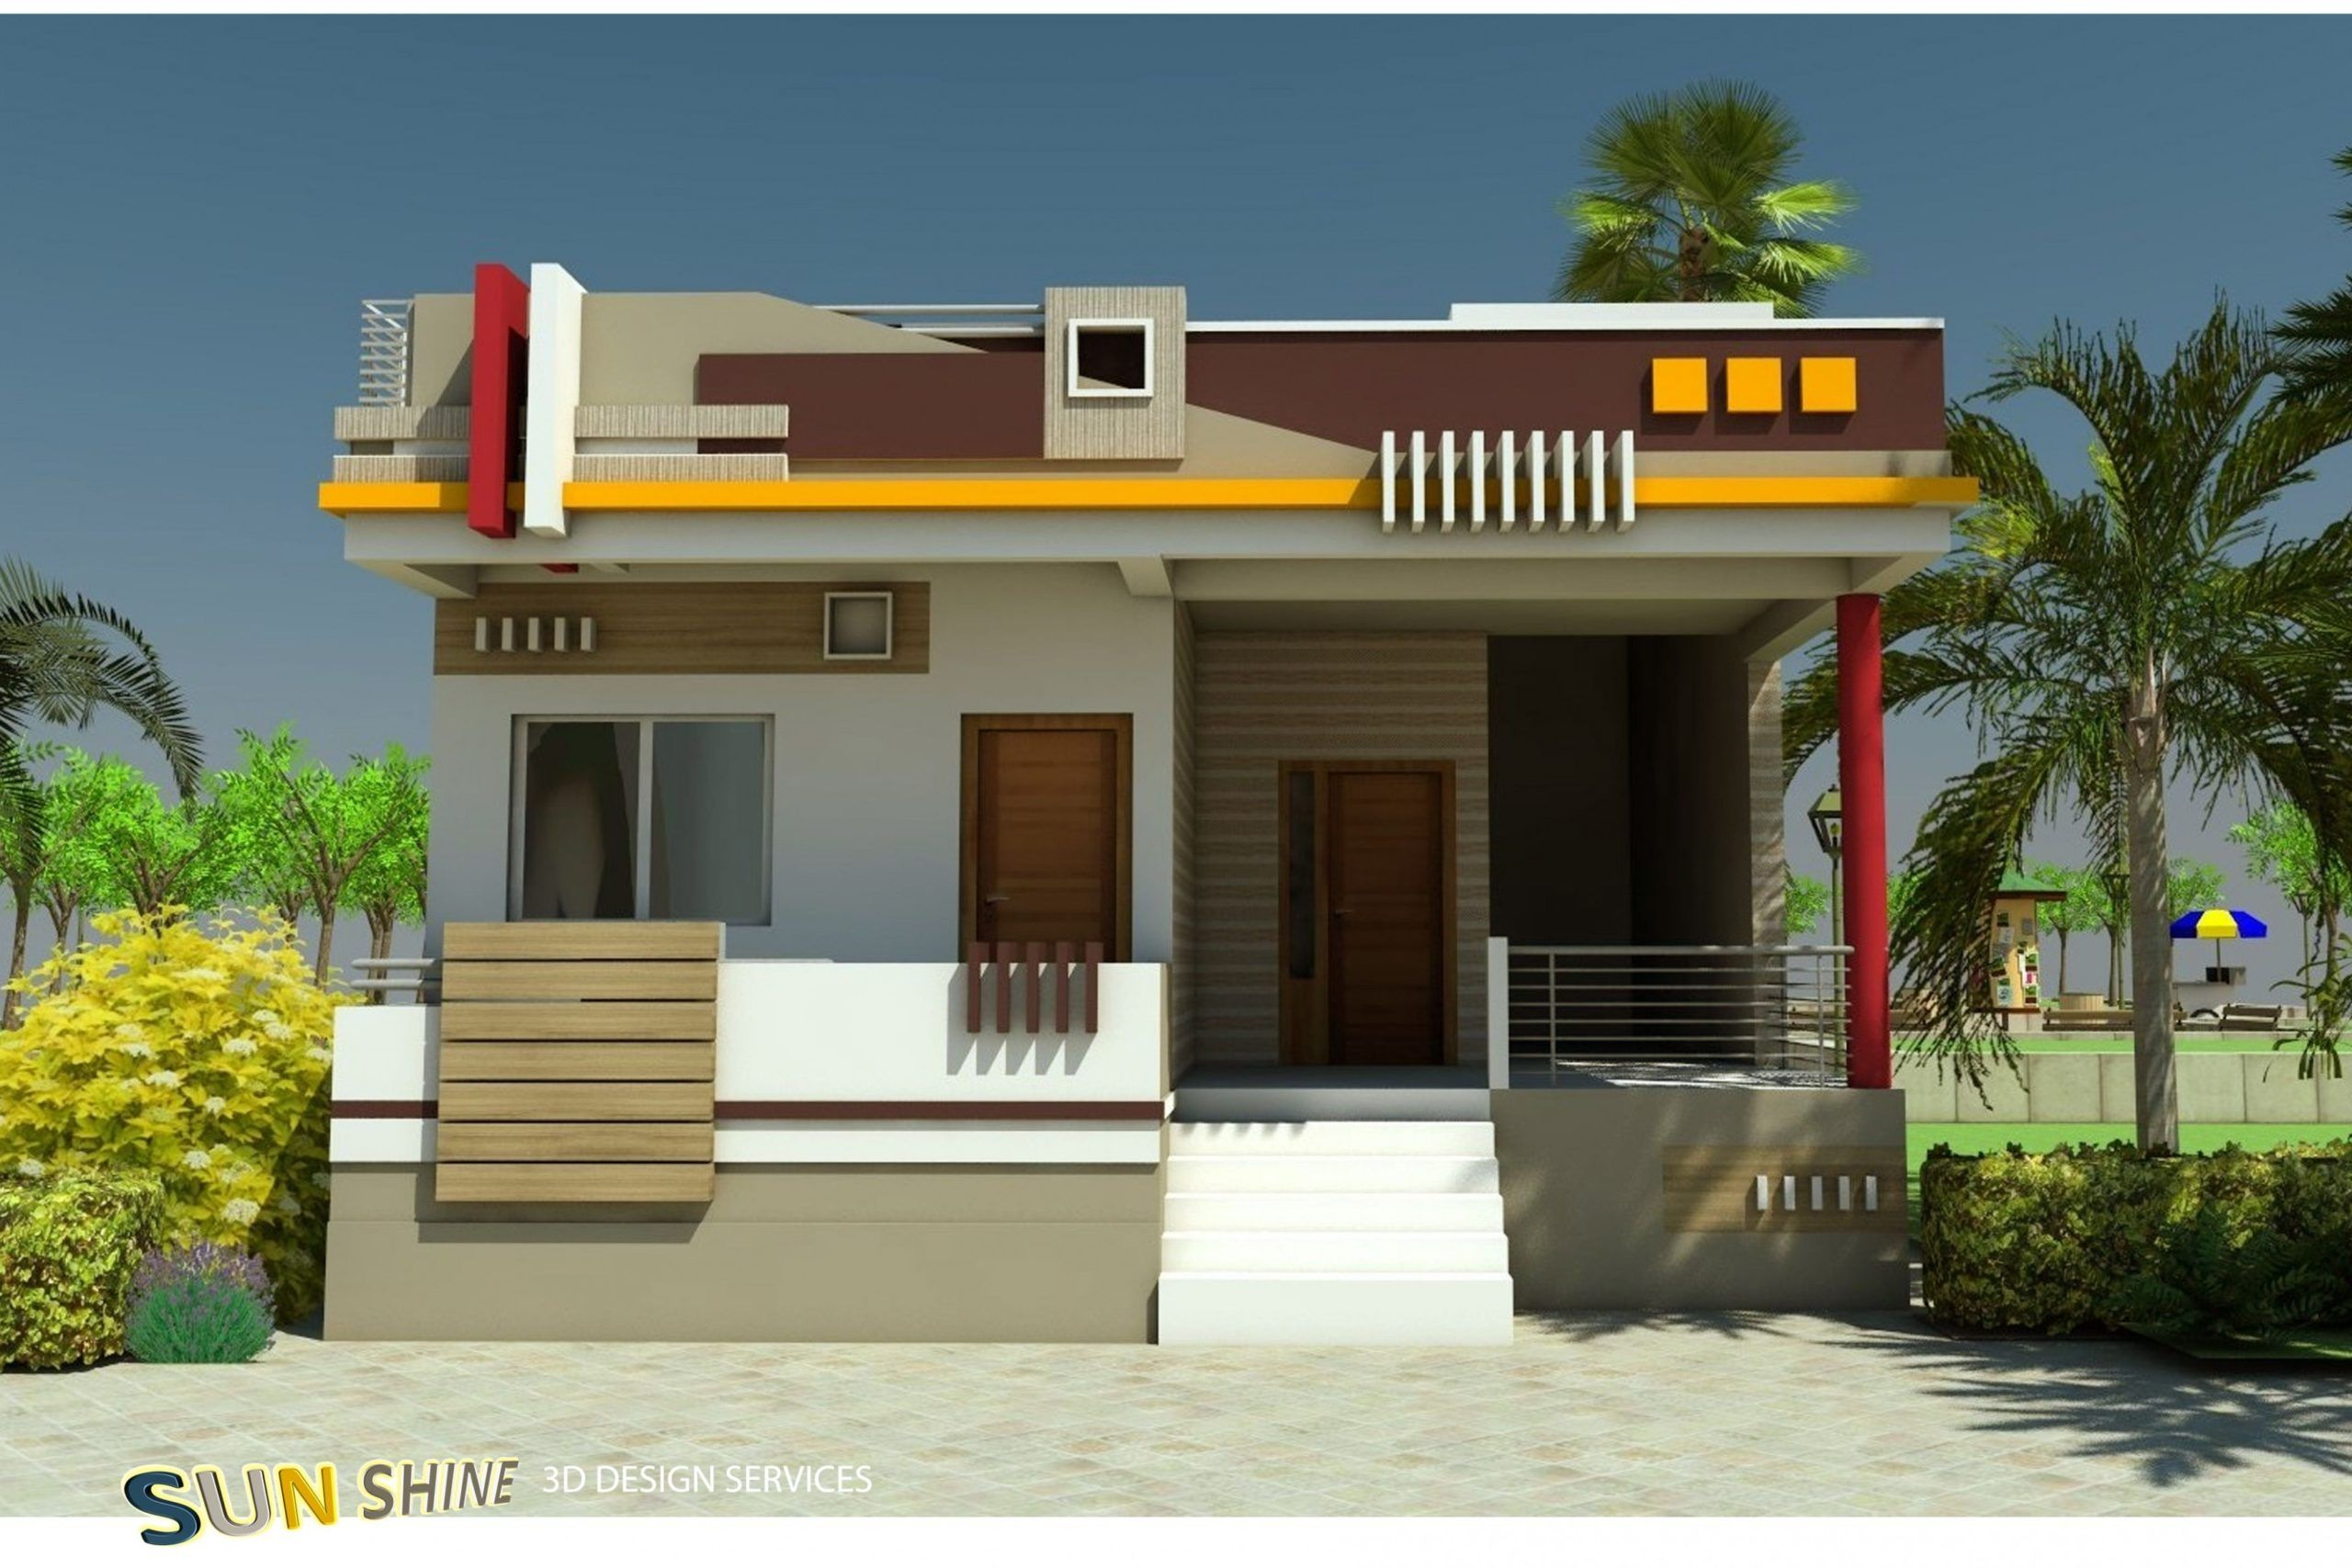 f55209539e46b497264a6ededf4b159b - 23+ Small House 15 Feet Front Home Design Images